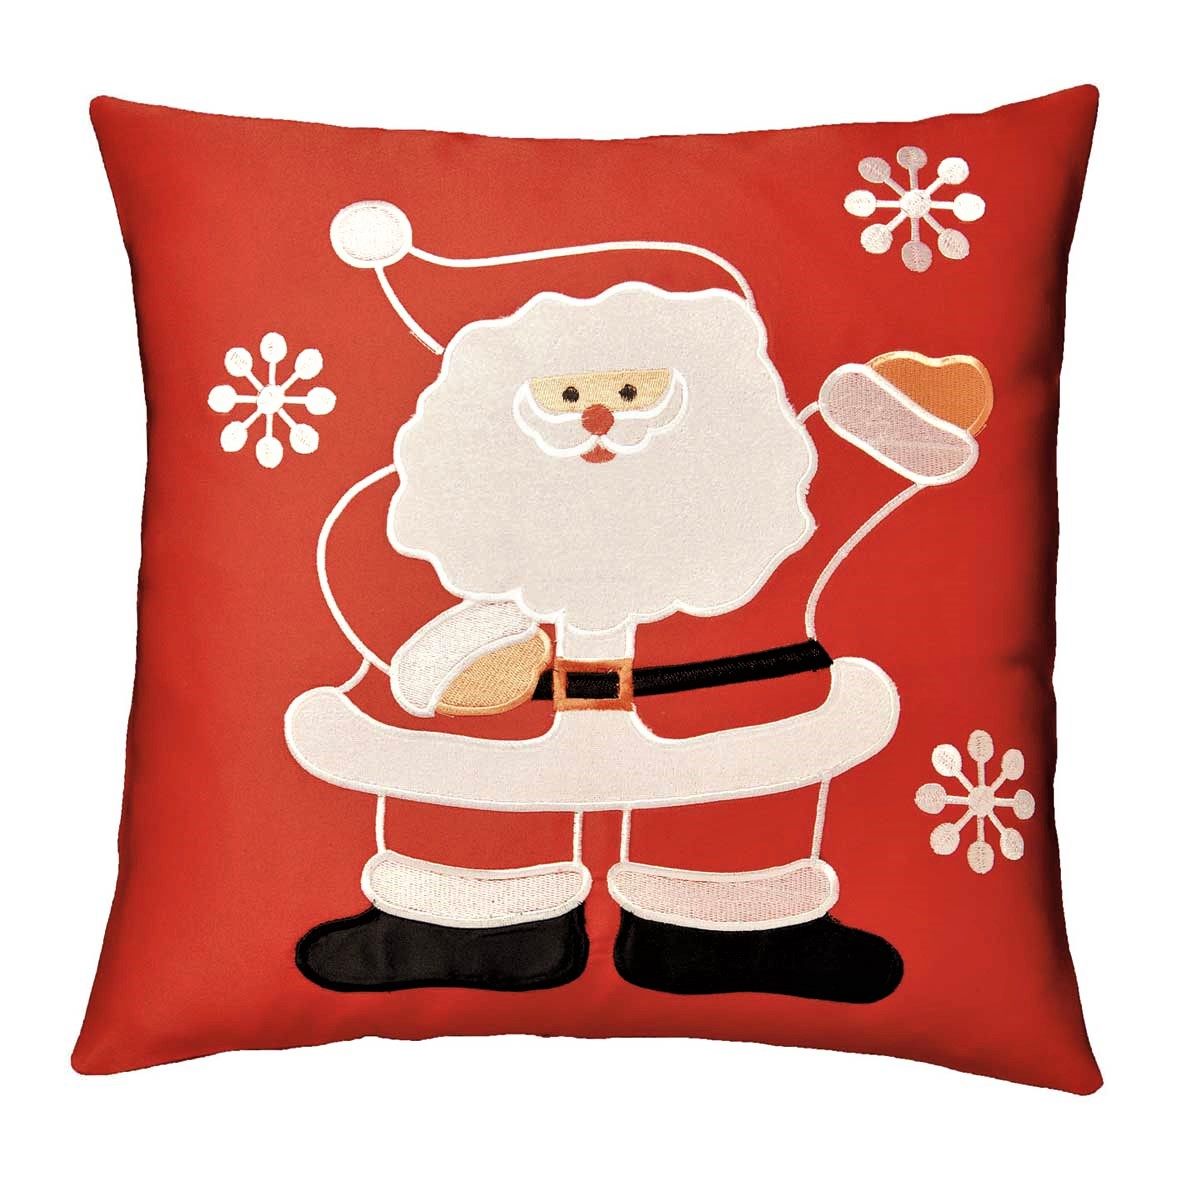 christmas chair back covers uk baker tufted dining chairs santa applique cushion cover red 42x42cm 16x16